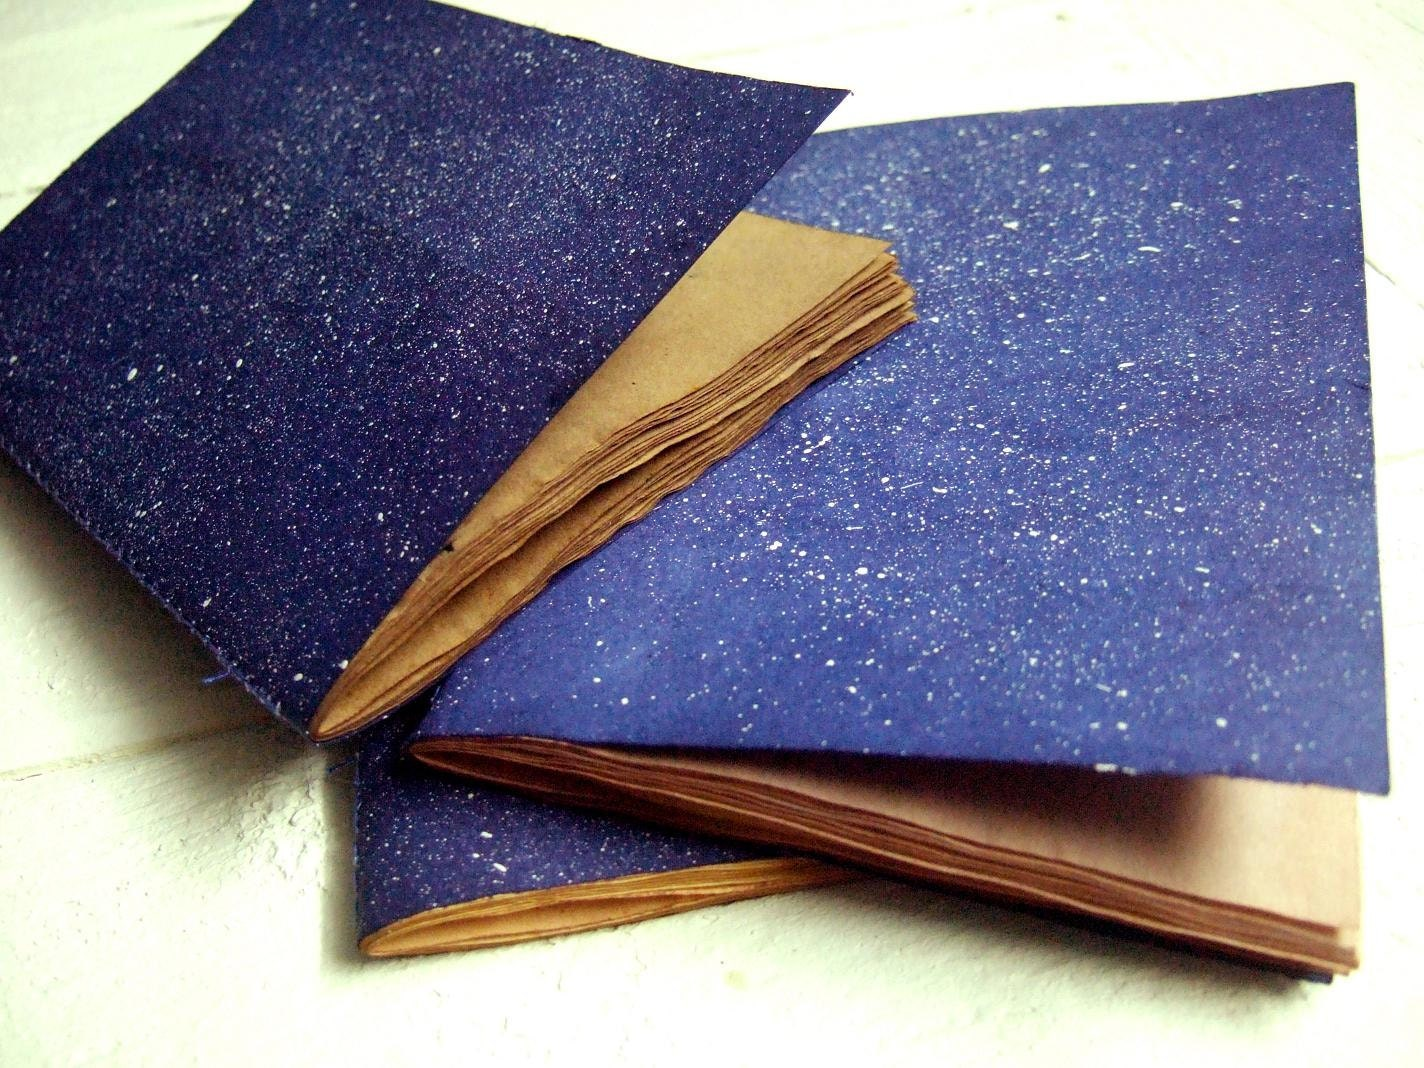 Cosmos - Jotter, Pocket Notebook, Mini Journal with antique paper - Patiak